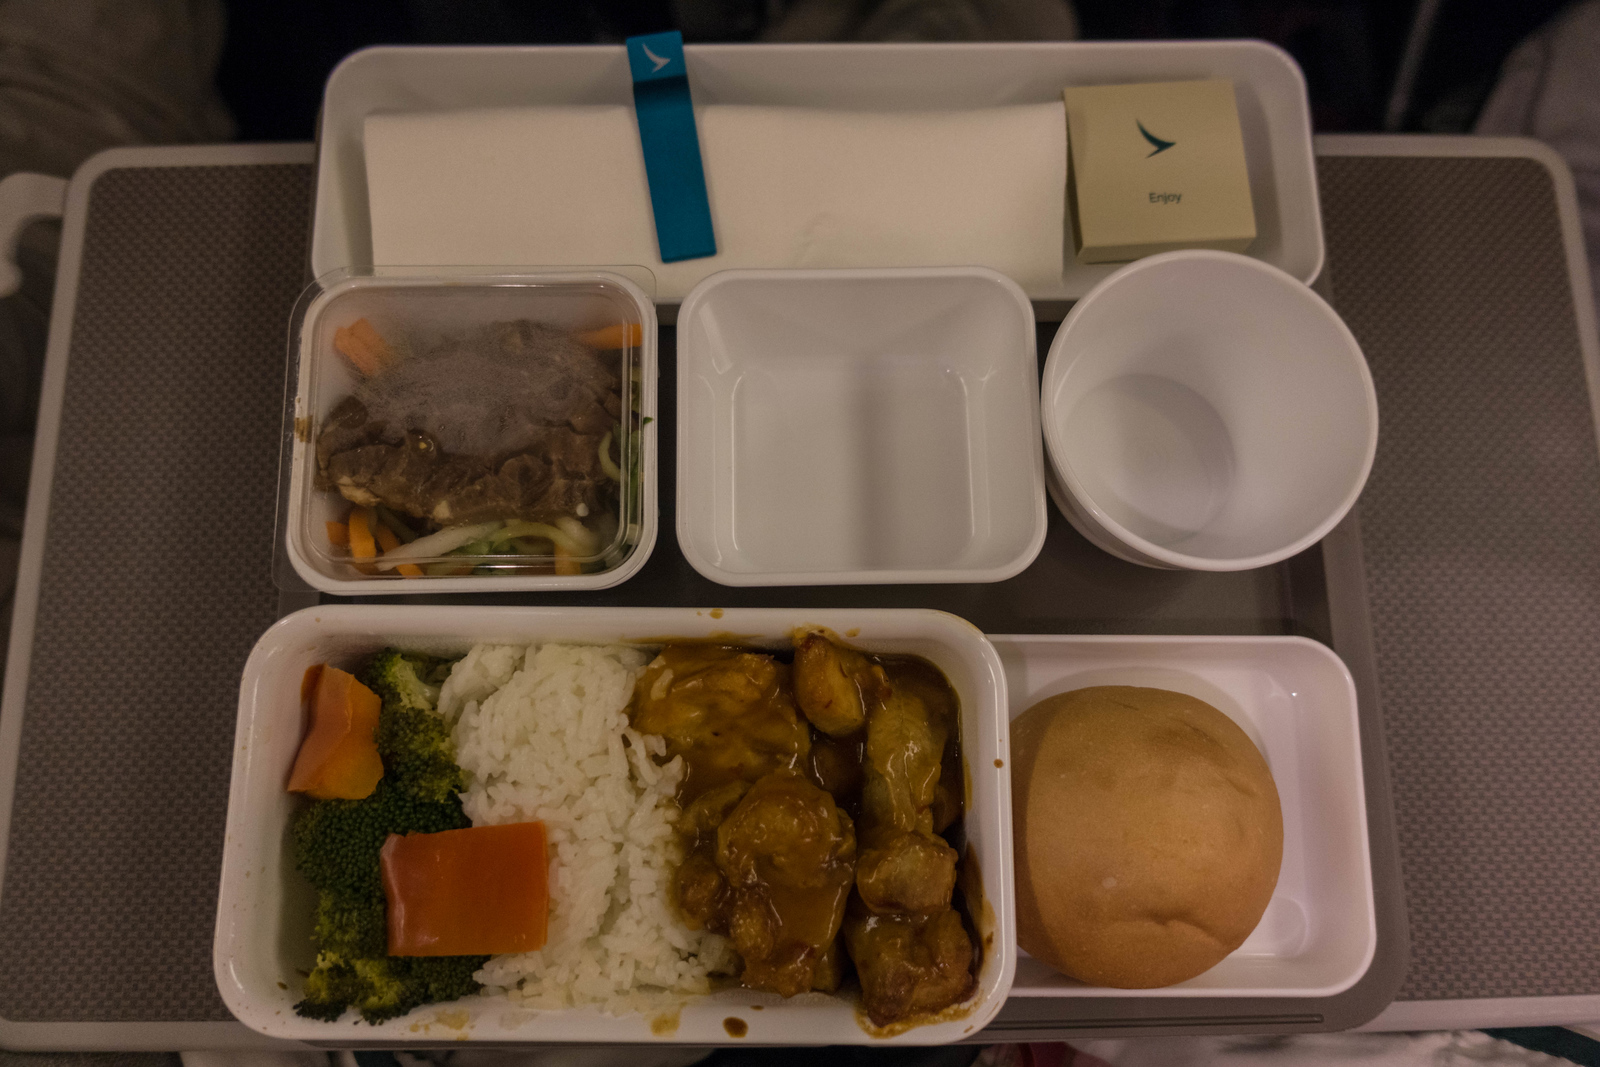 Cathay Pacific Premium Economy meals were certainly better than coach